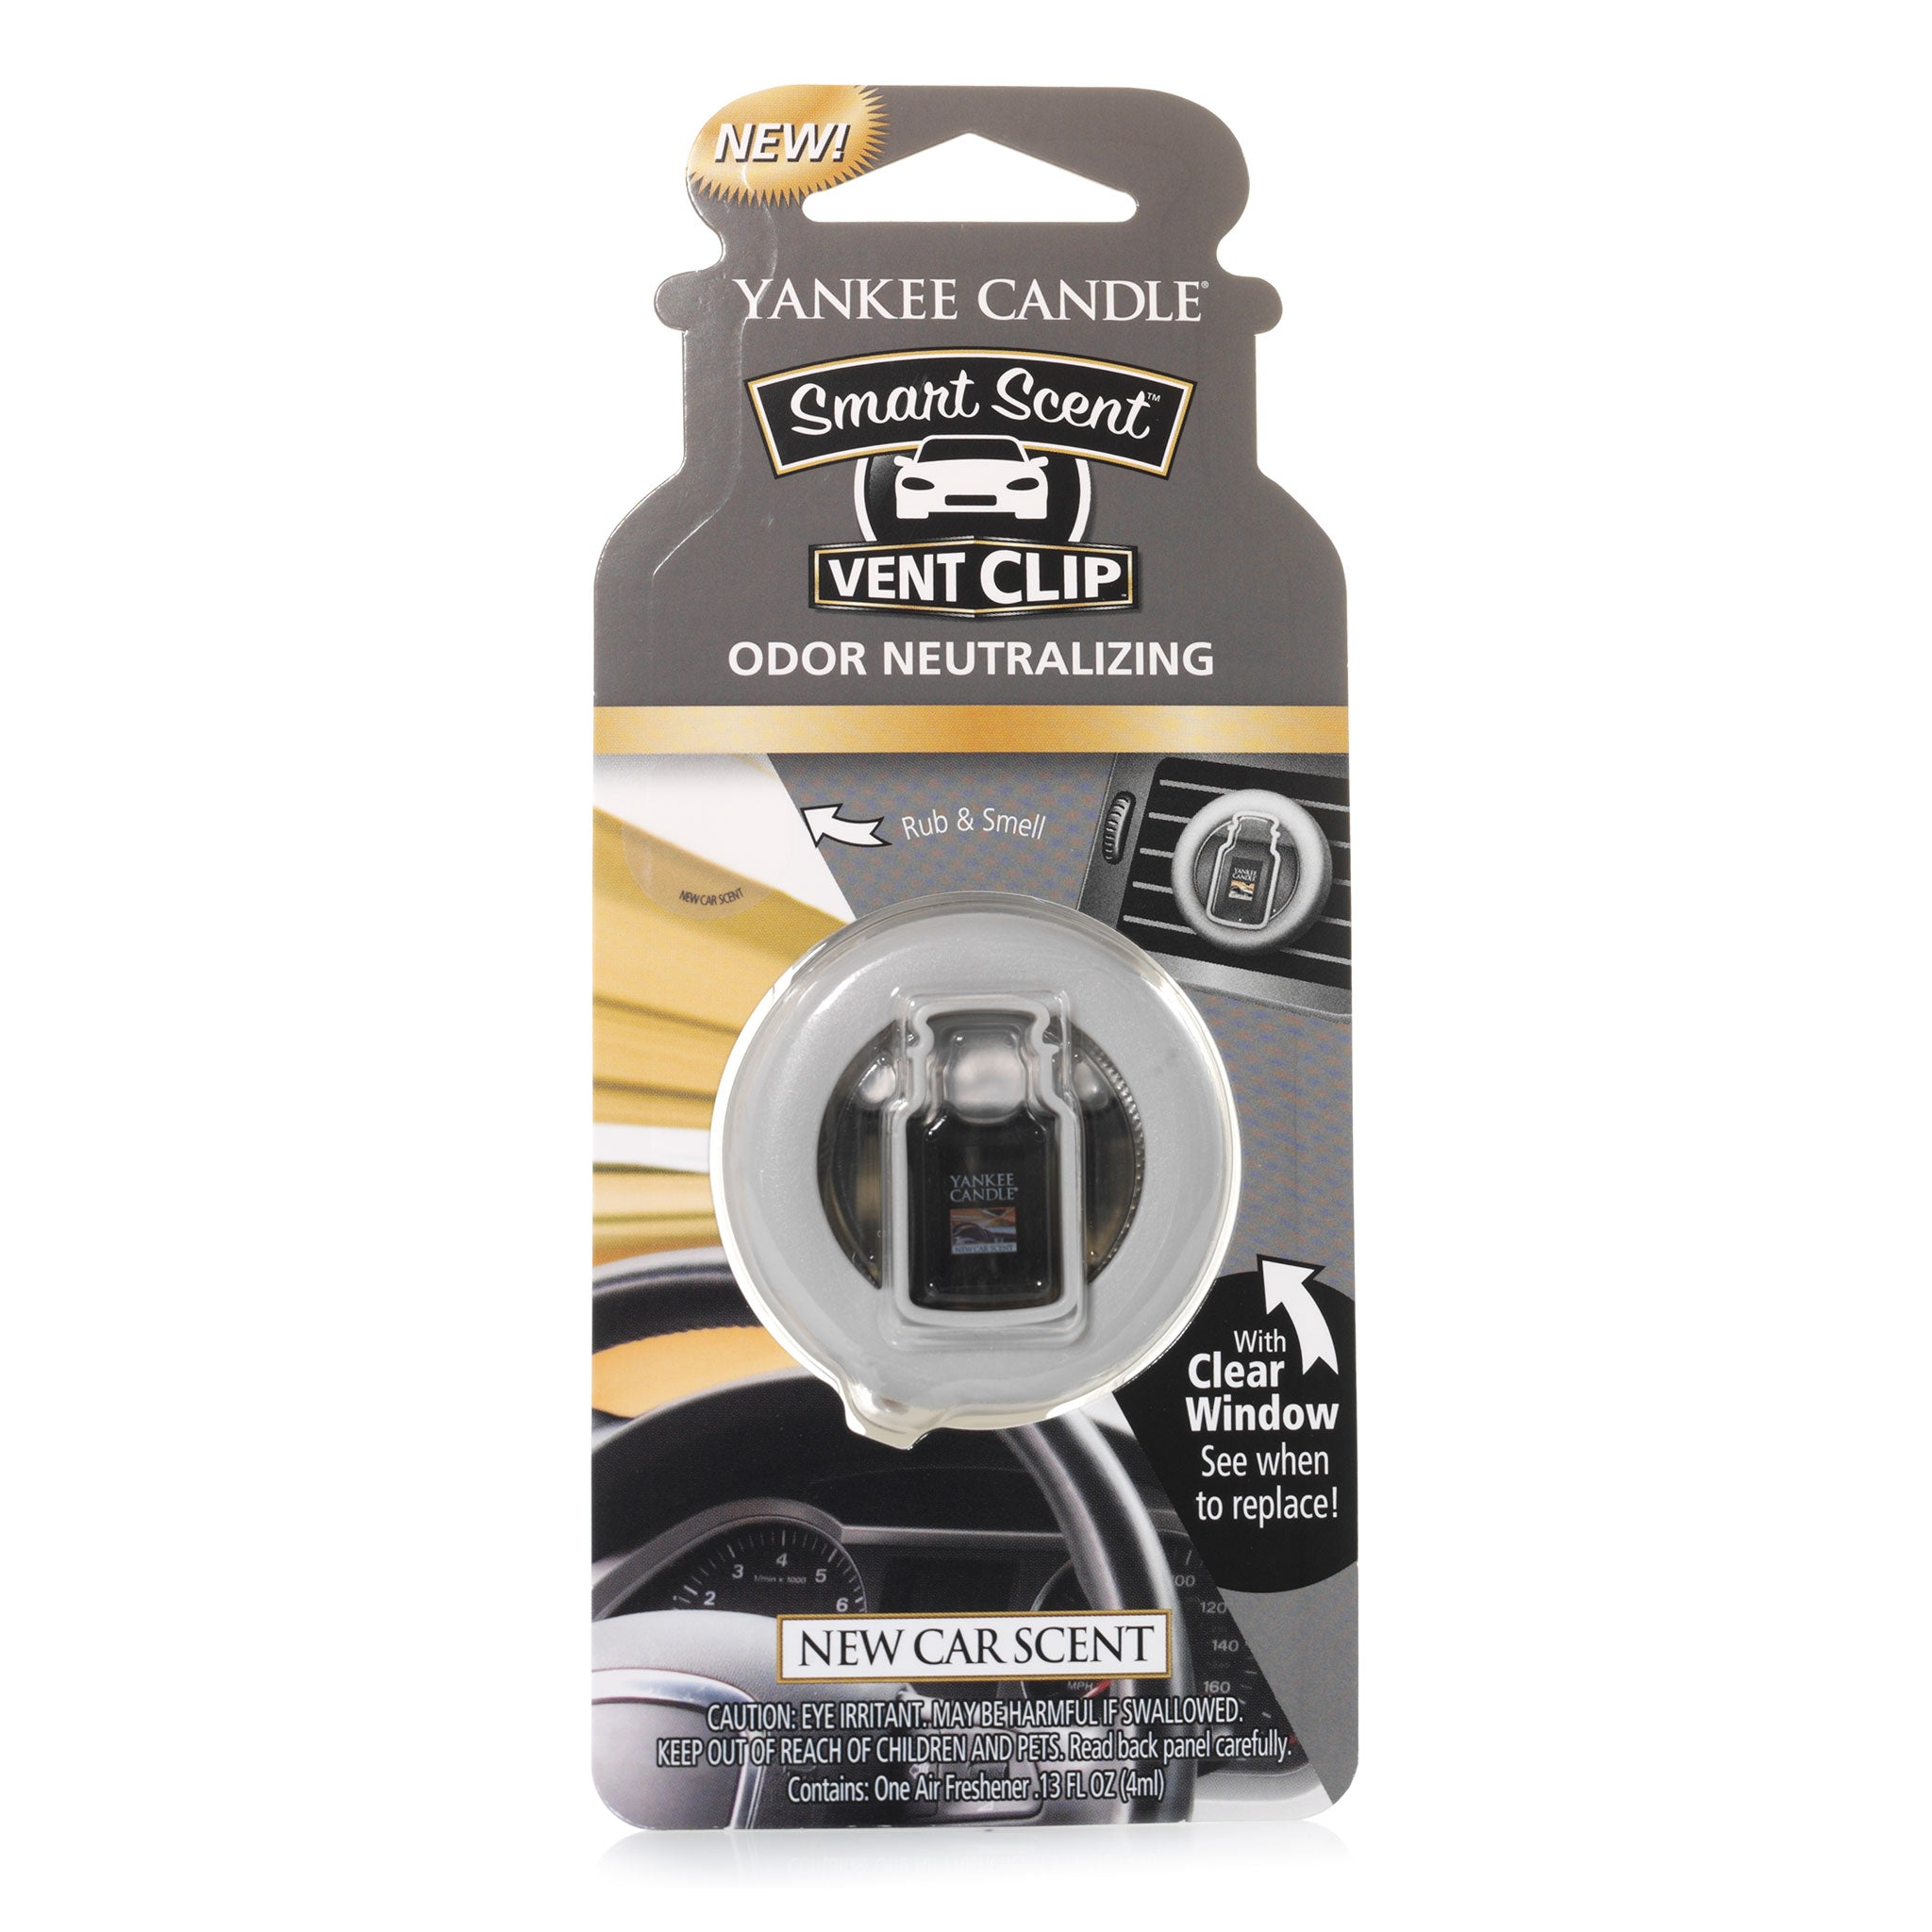 NEW CAR SCENT -Yankee Candle- Smart Scent Vent Clip